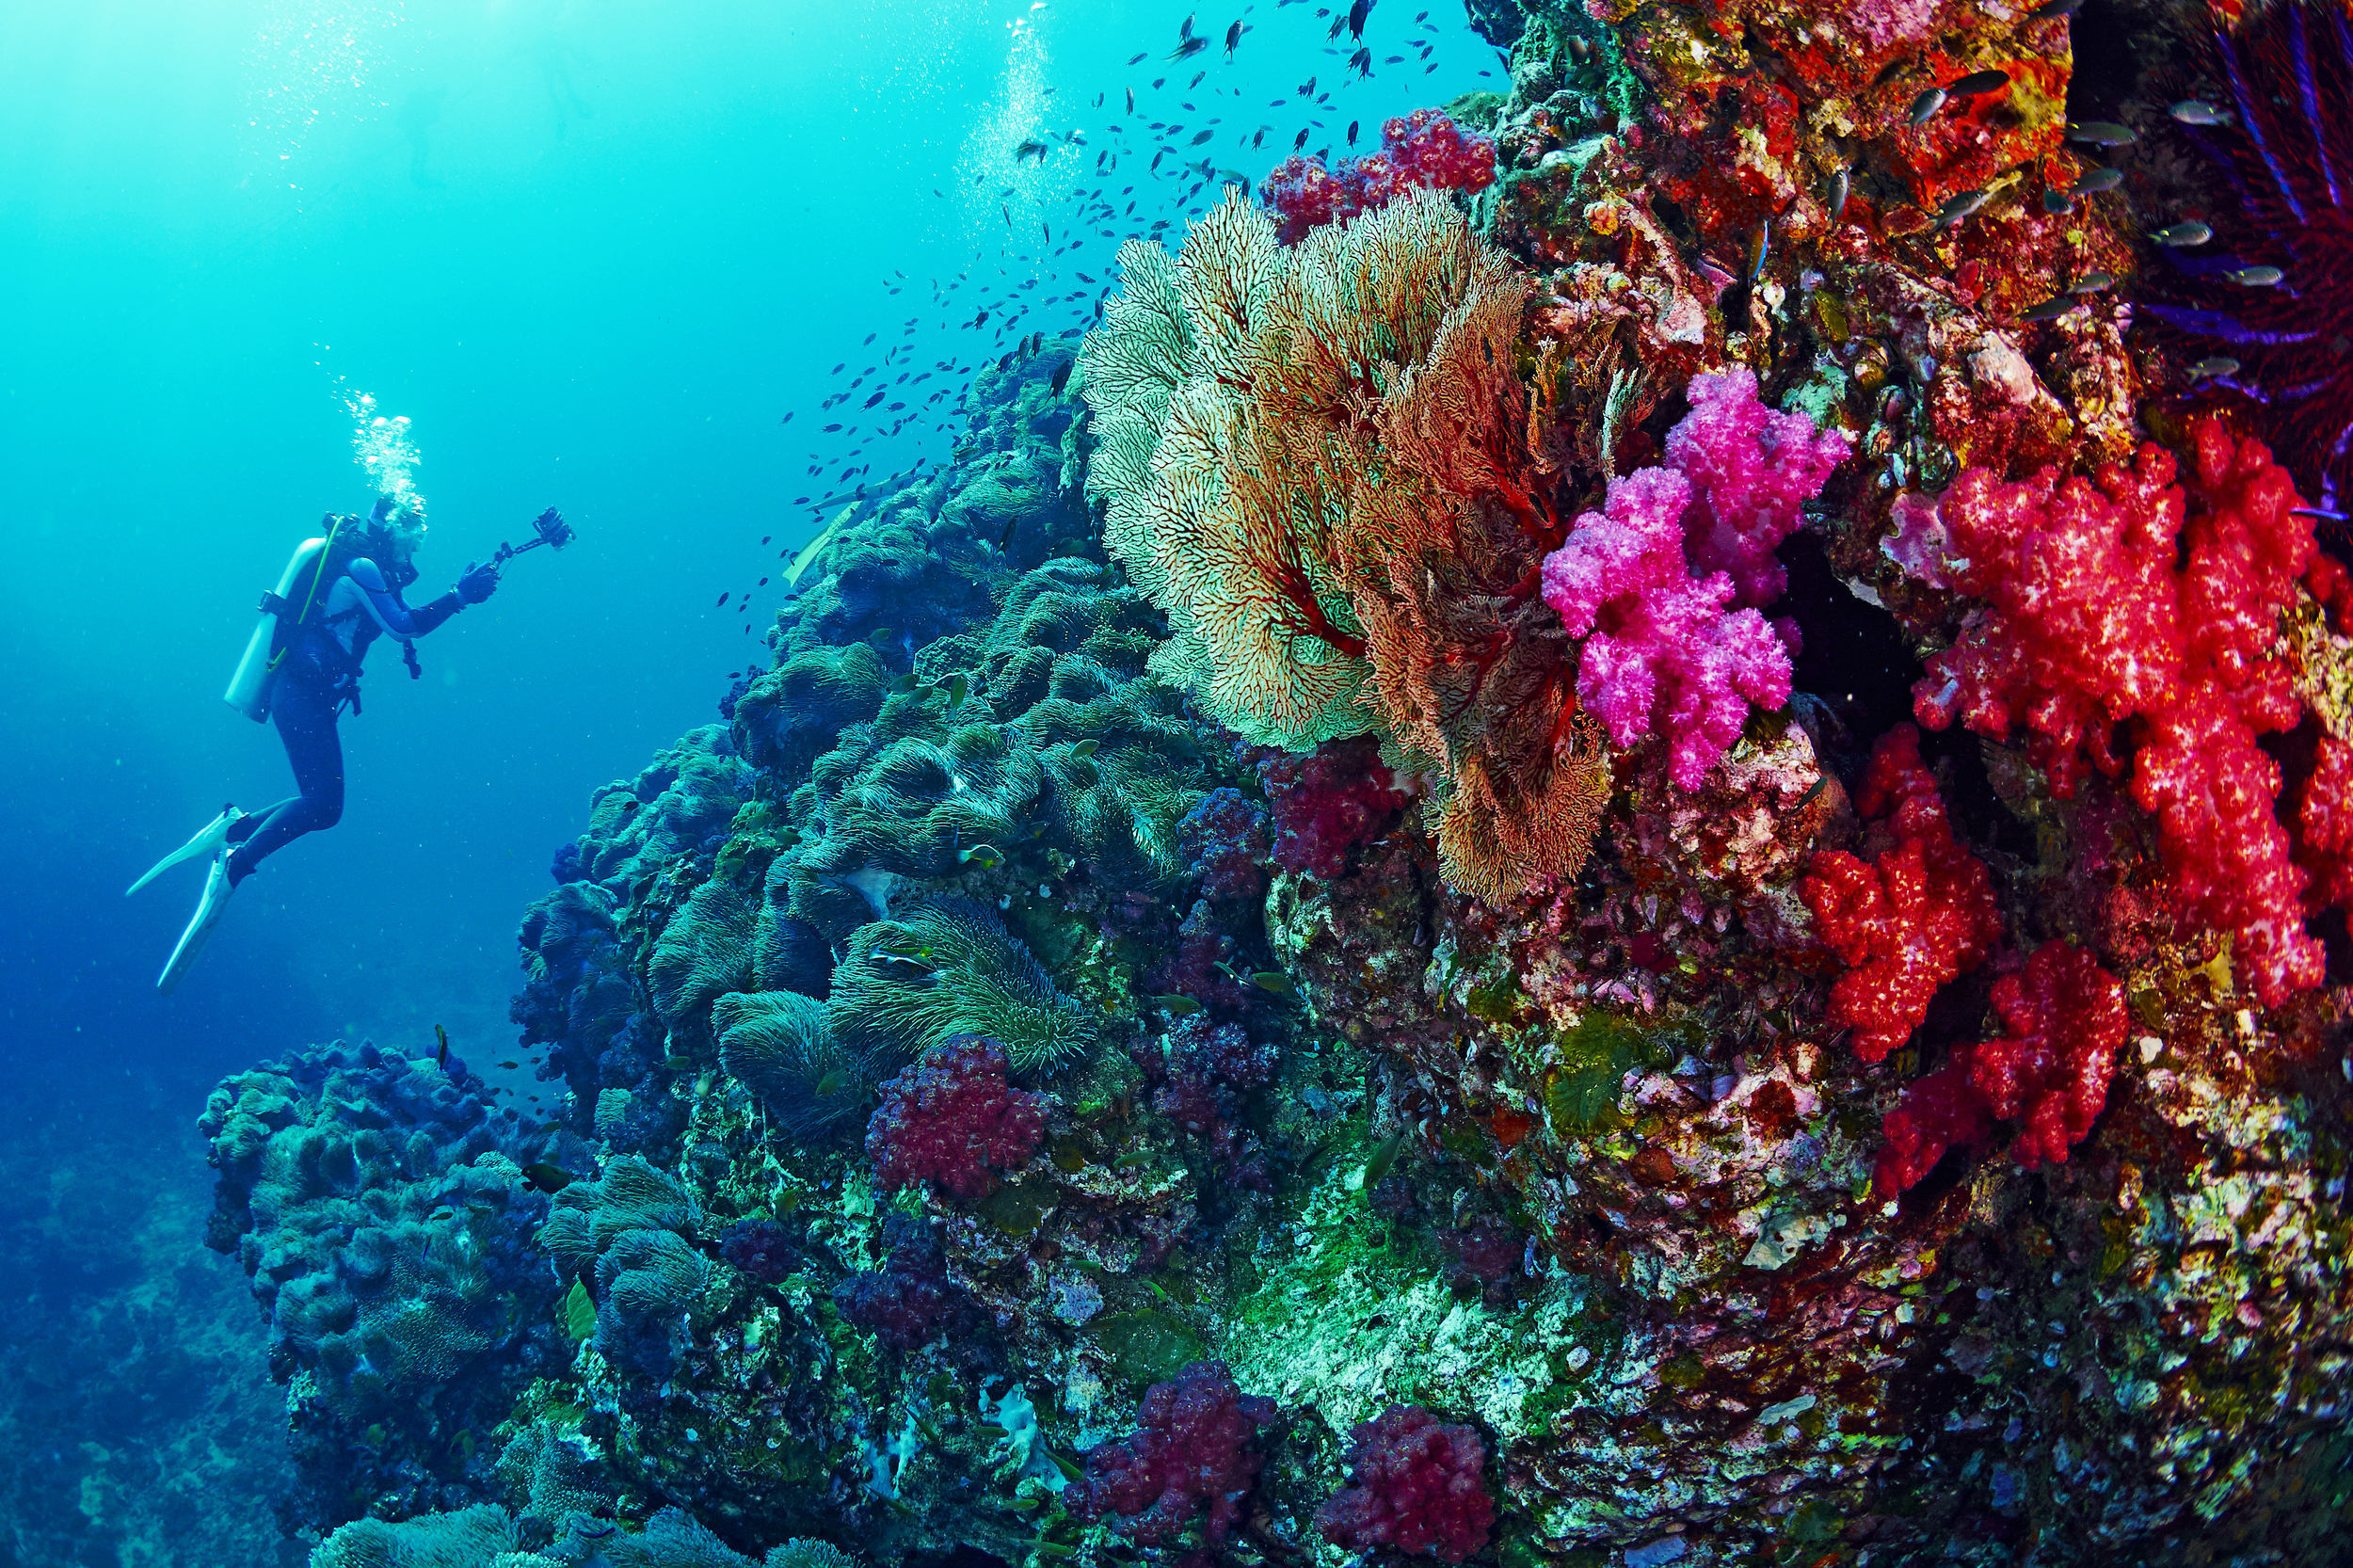 6 Best Scuba Diving Destinations for Beginners | Reader's ...